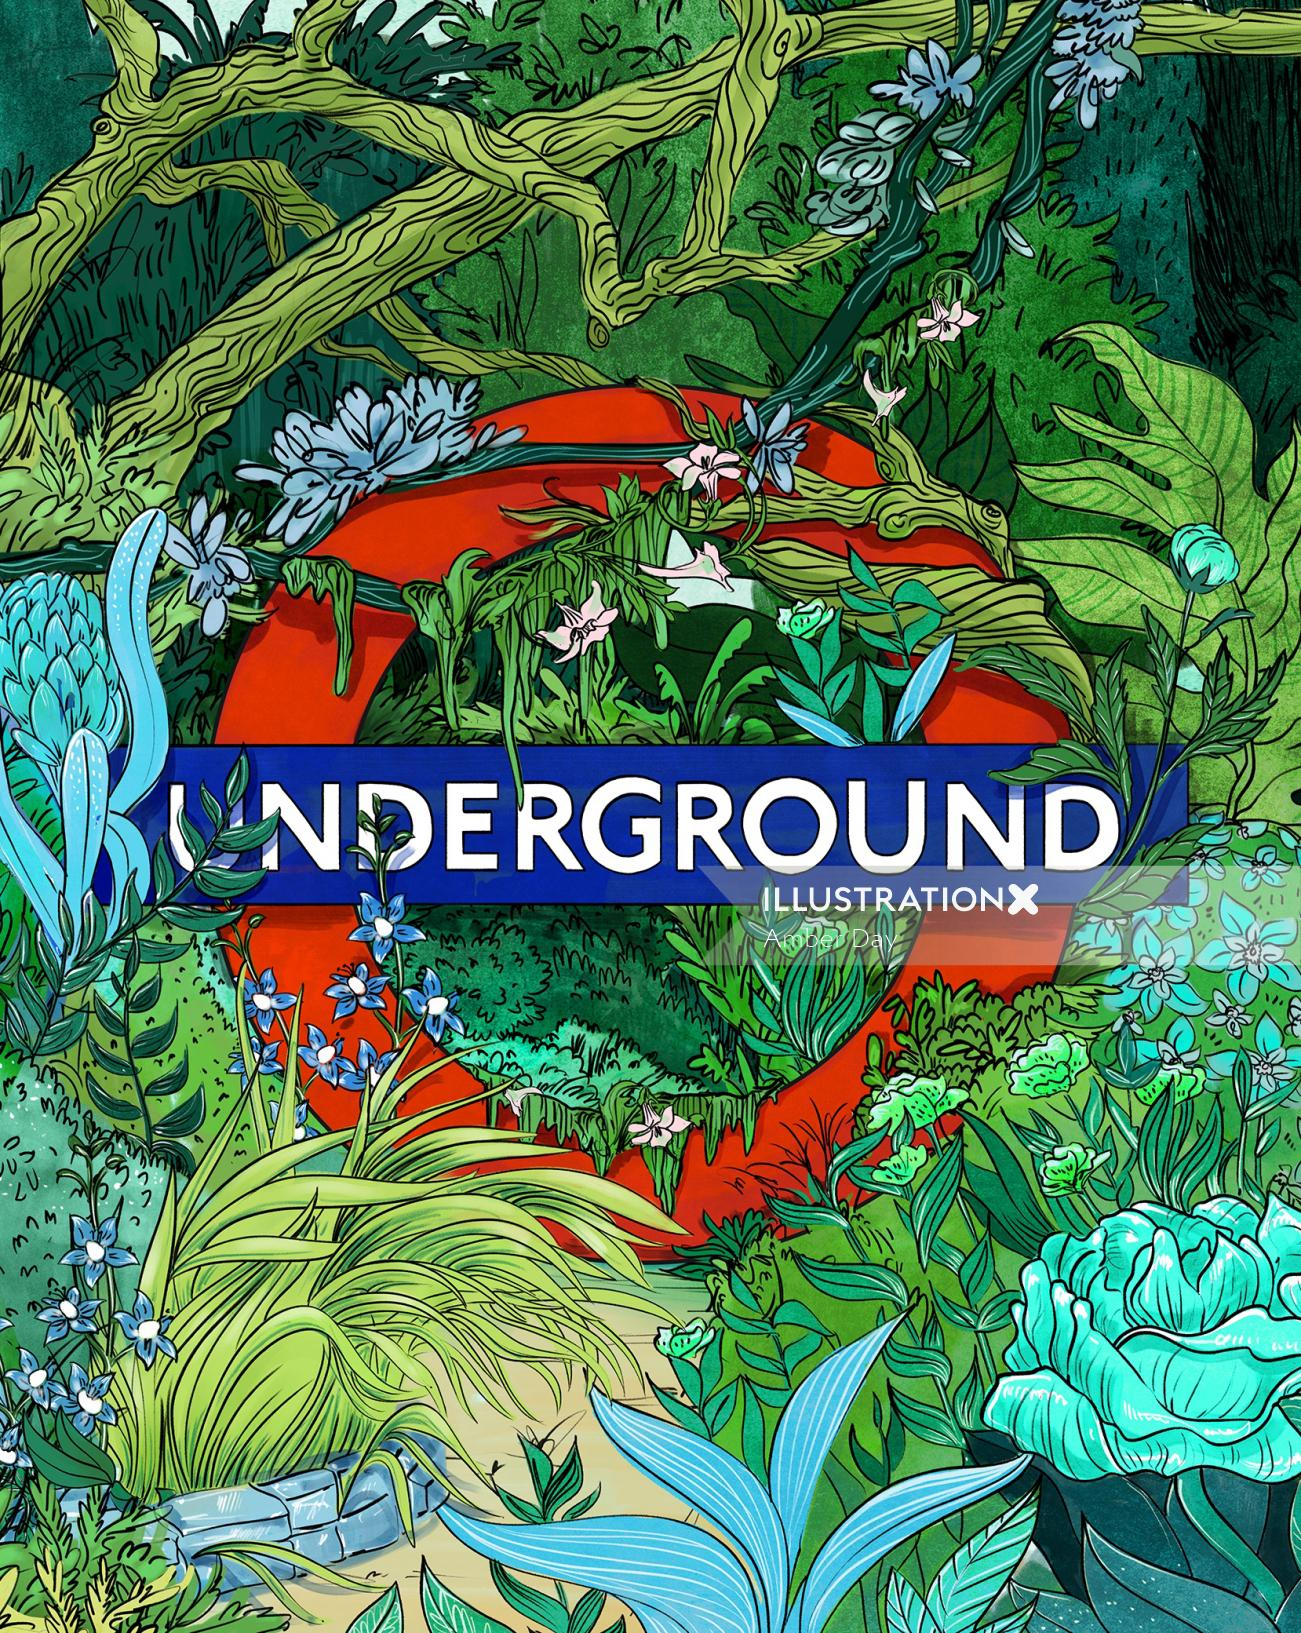 london, subway, jungle, color, green, plants, wild, line, logo, poster